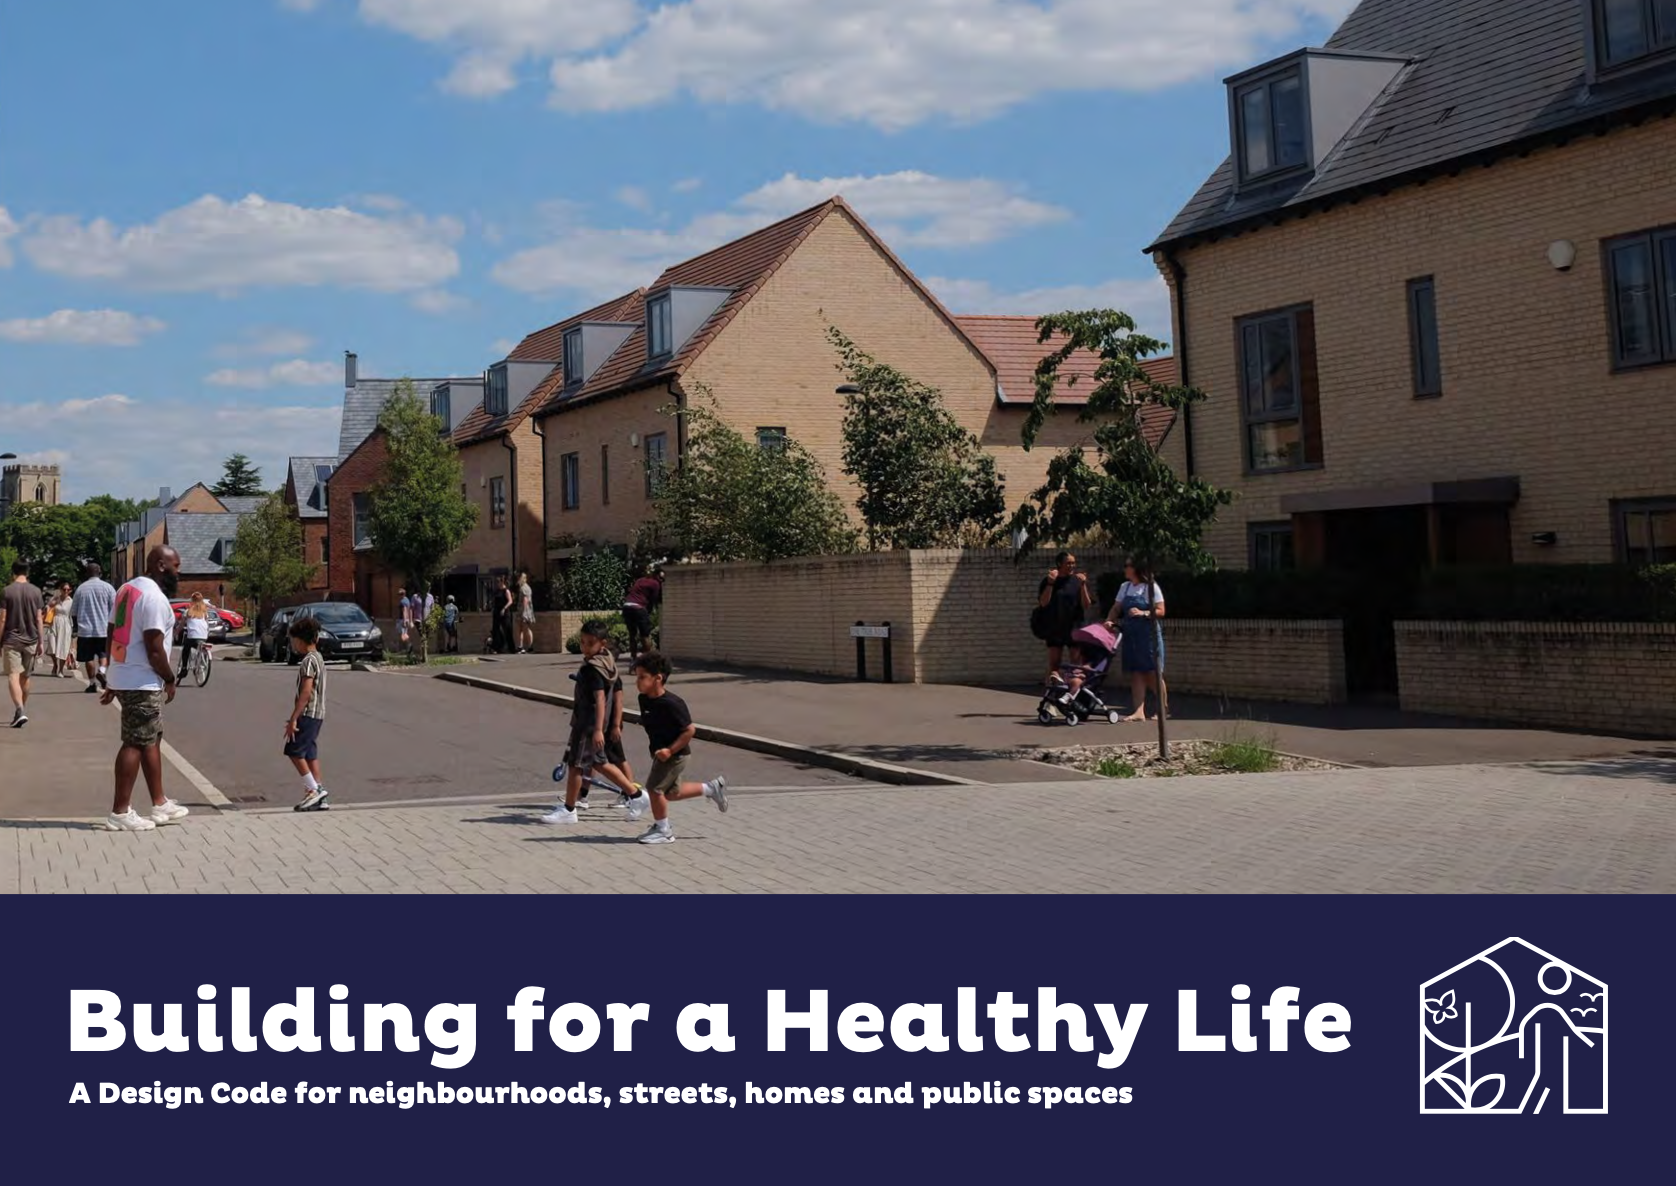 Design South East – Building for a Healthy Life